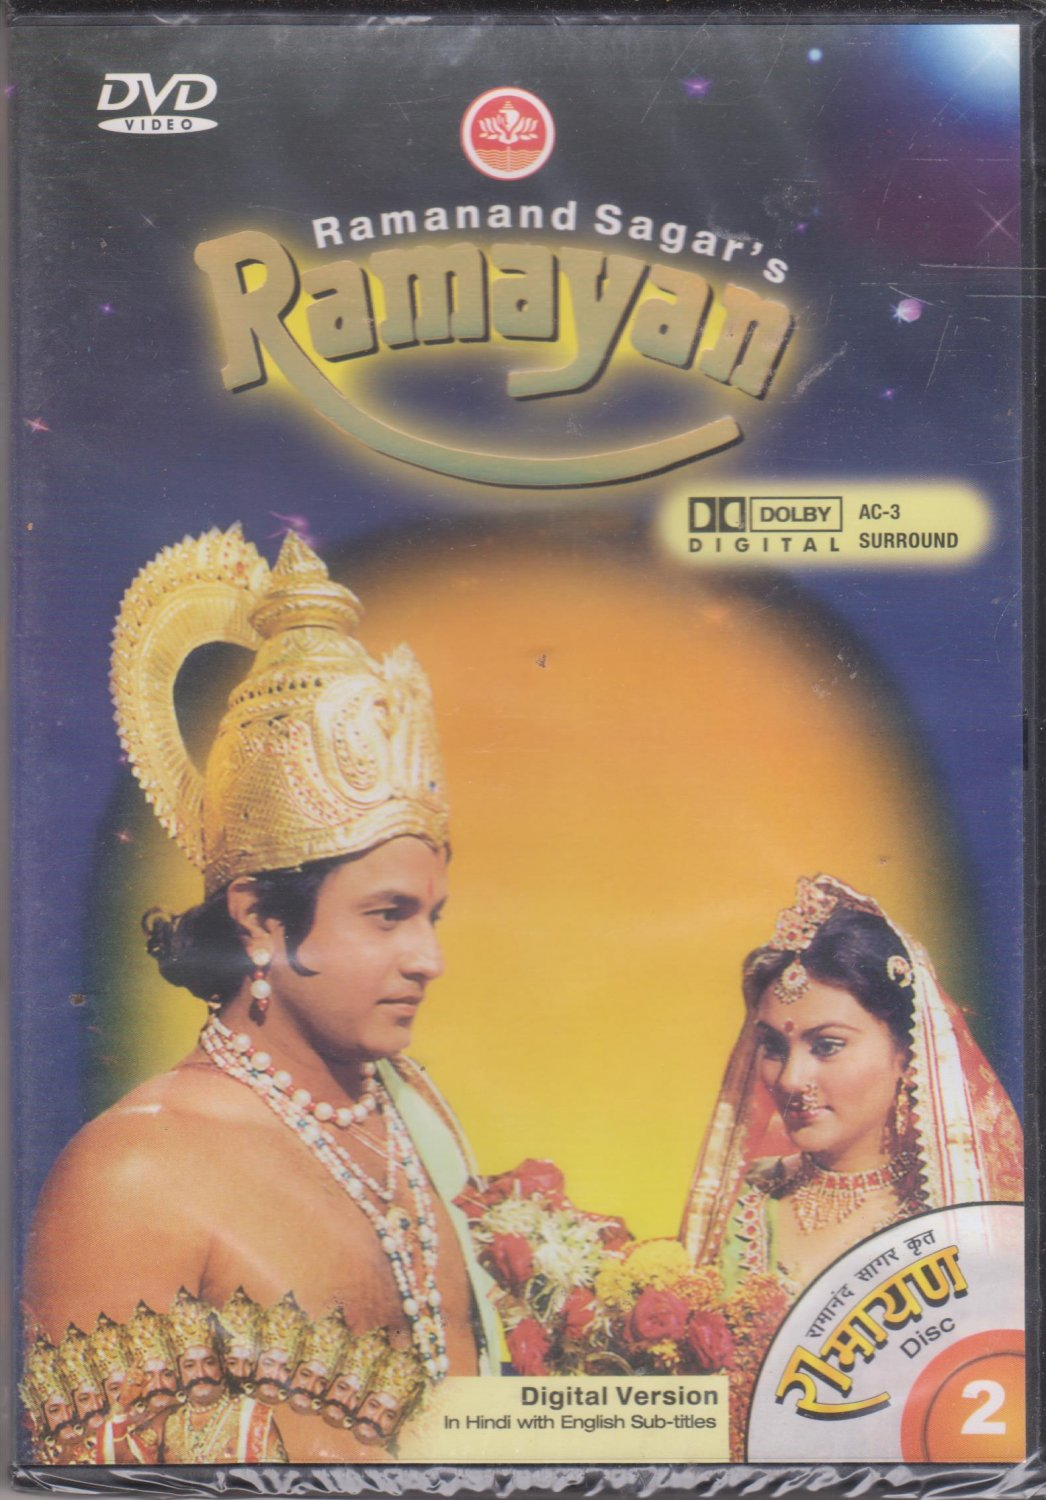 Ramayan - Disc 2 - Episode 4 to 8 - ramanand Sahar's  [Dvd]  1st edition Released